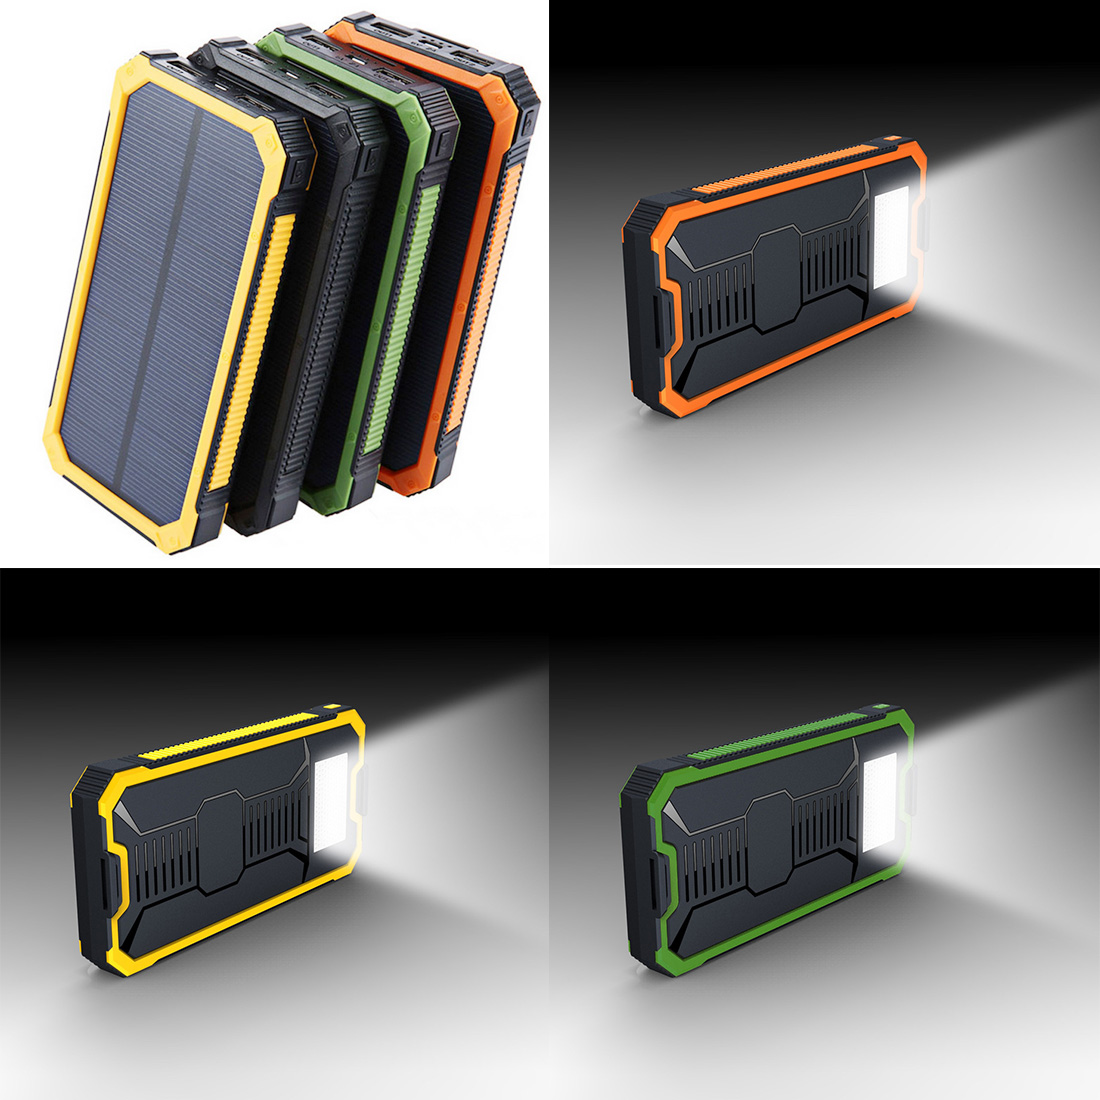 Multifunction Solar Mobile Power Supply Kit No Battery Led Solar Panel Charger Storage Box Dual USB 18650 Power Bank Case new solar panel 30000mah diy waterproof power bank 2 usb solar charger case external battery charger accessories